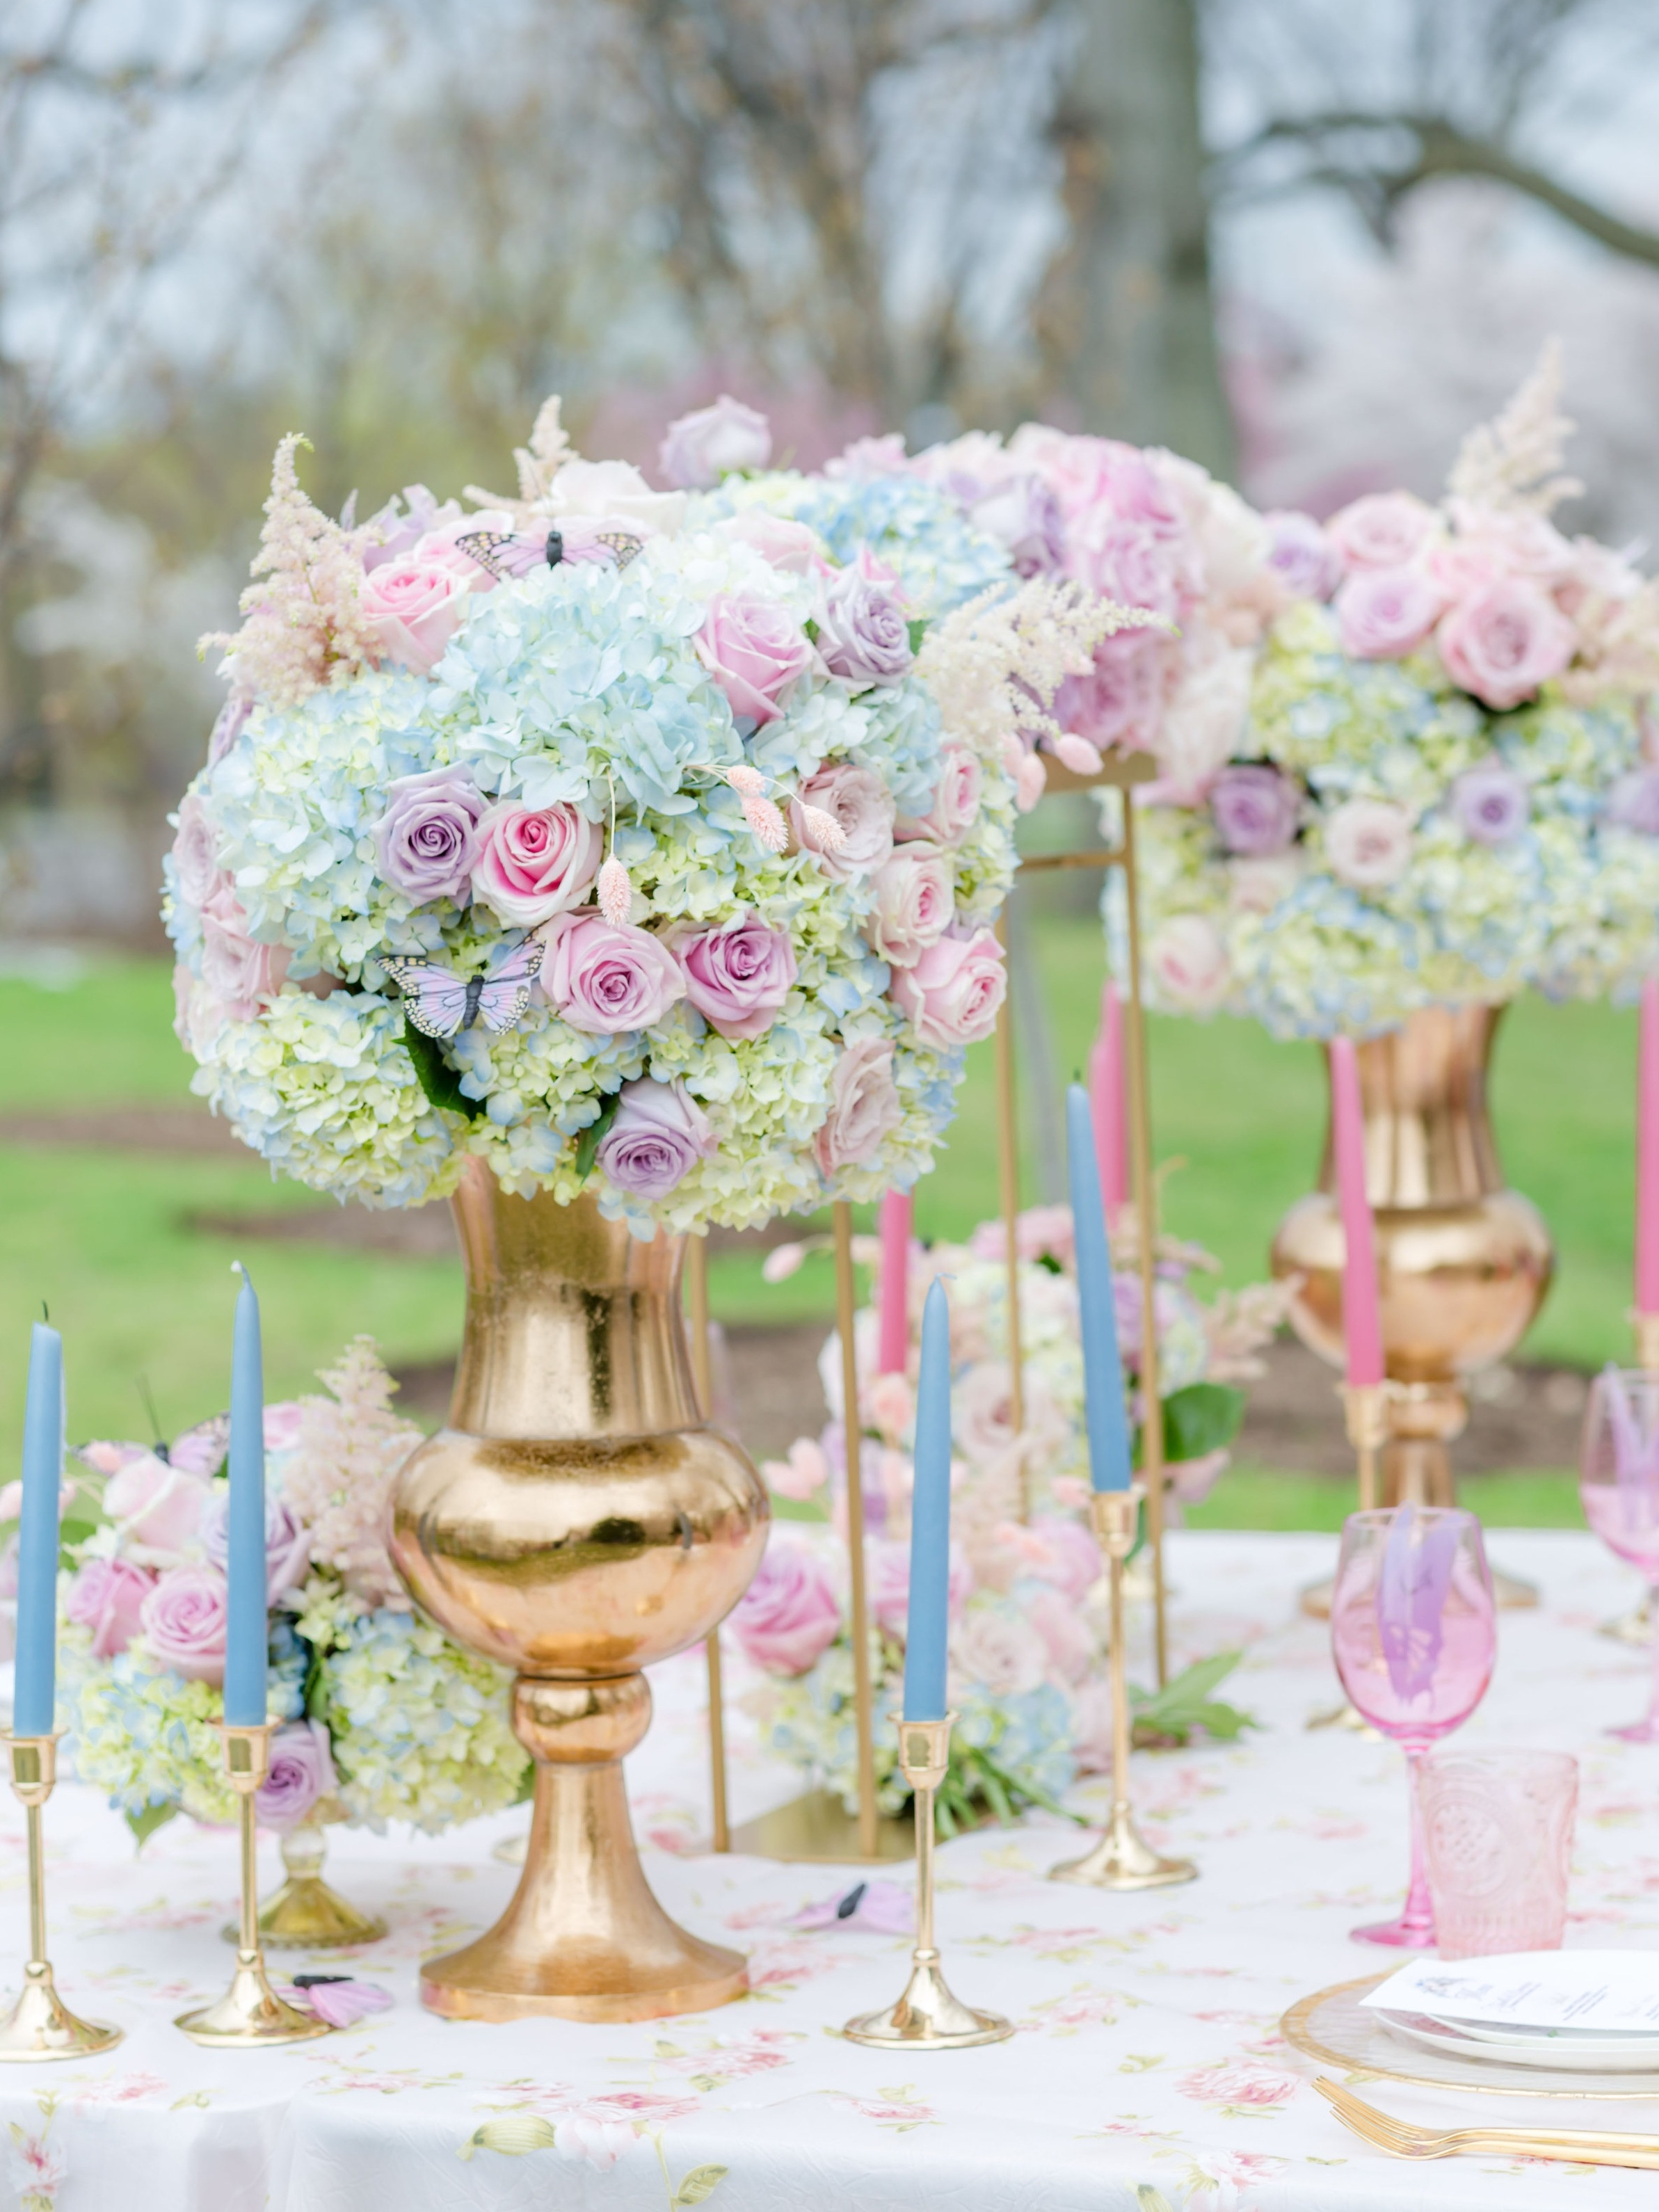 Floral Design - We specialize in creating lush floral arrangements in many different sizes. Request more info on we can use these beauties to enhance the decor of your next occassion!